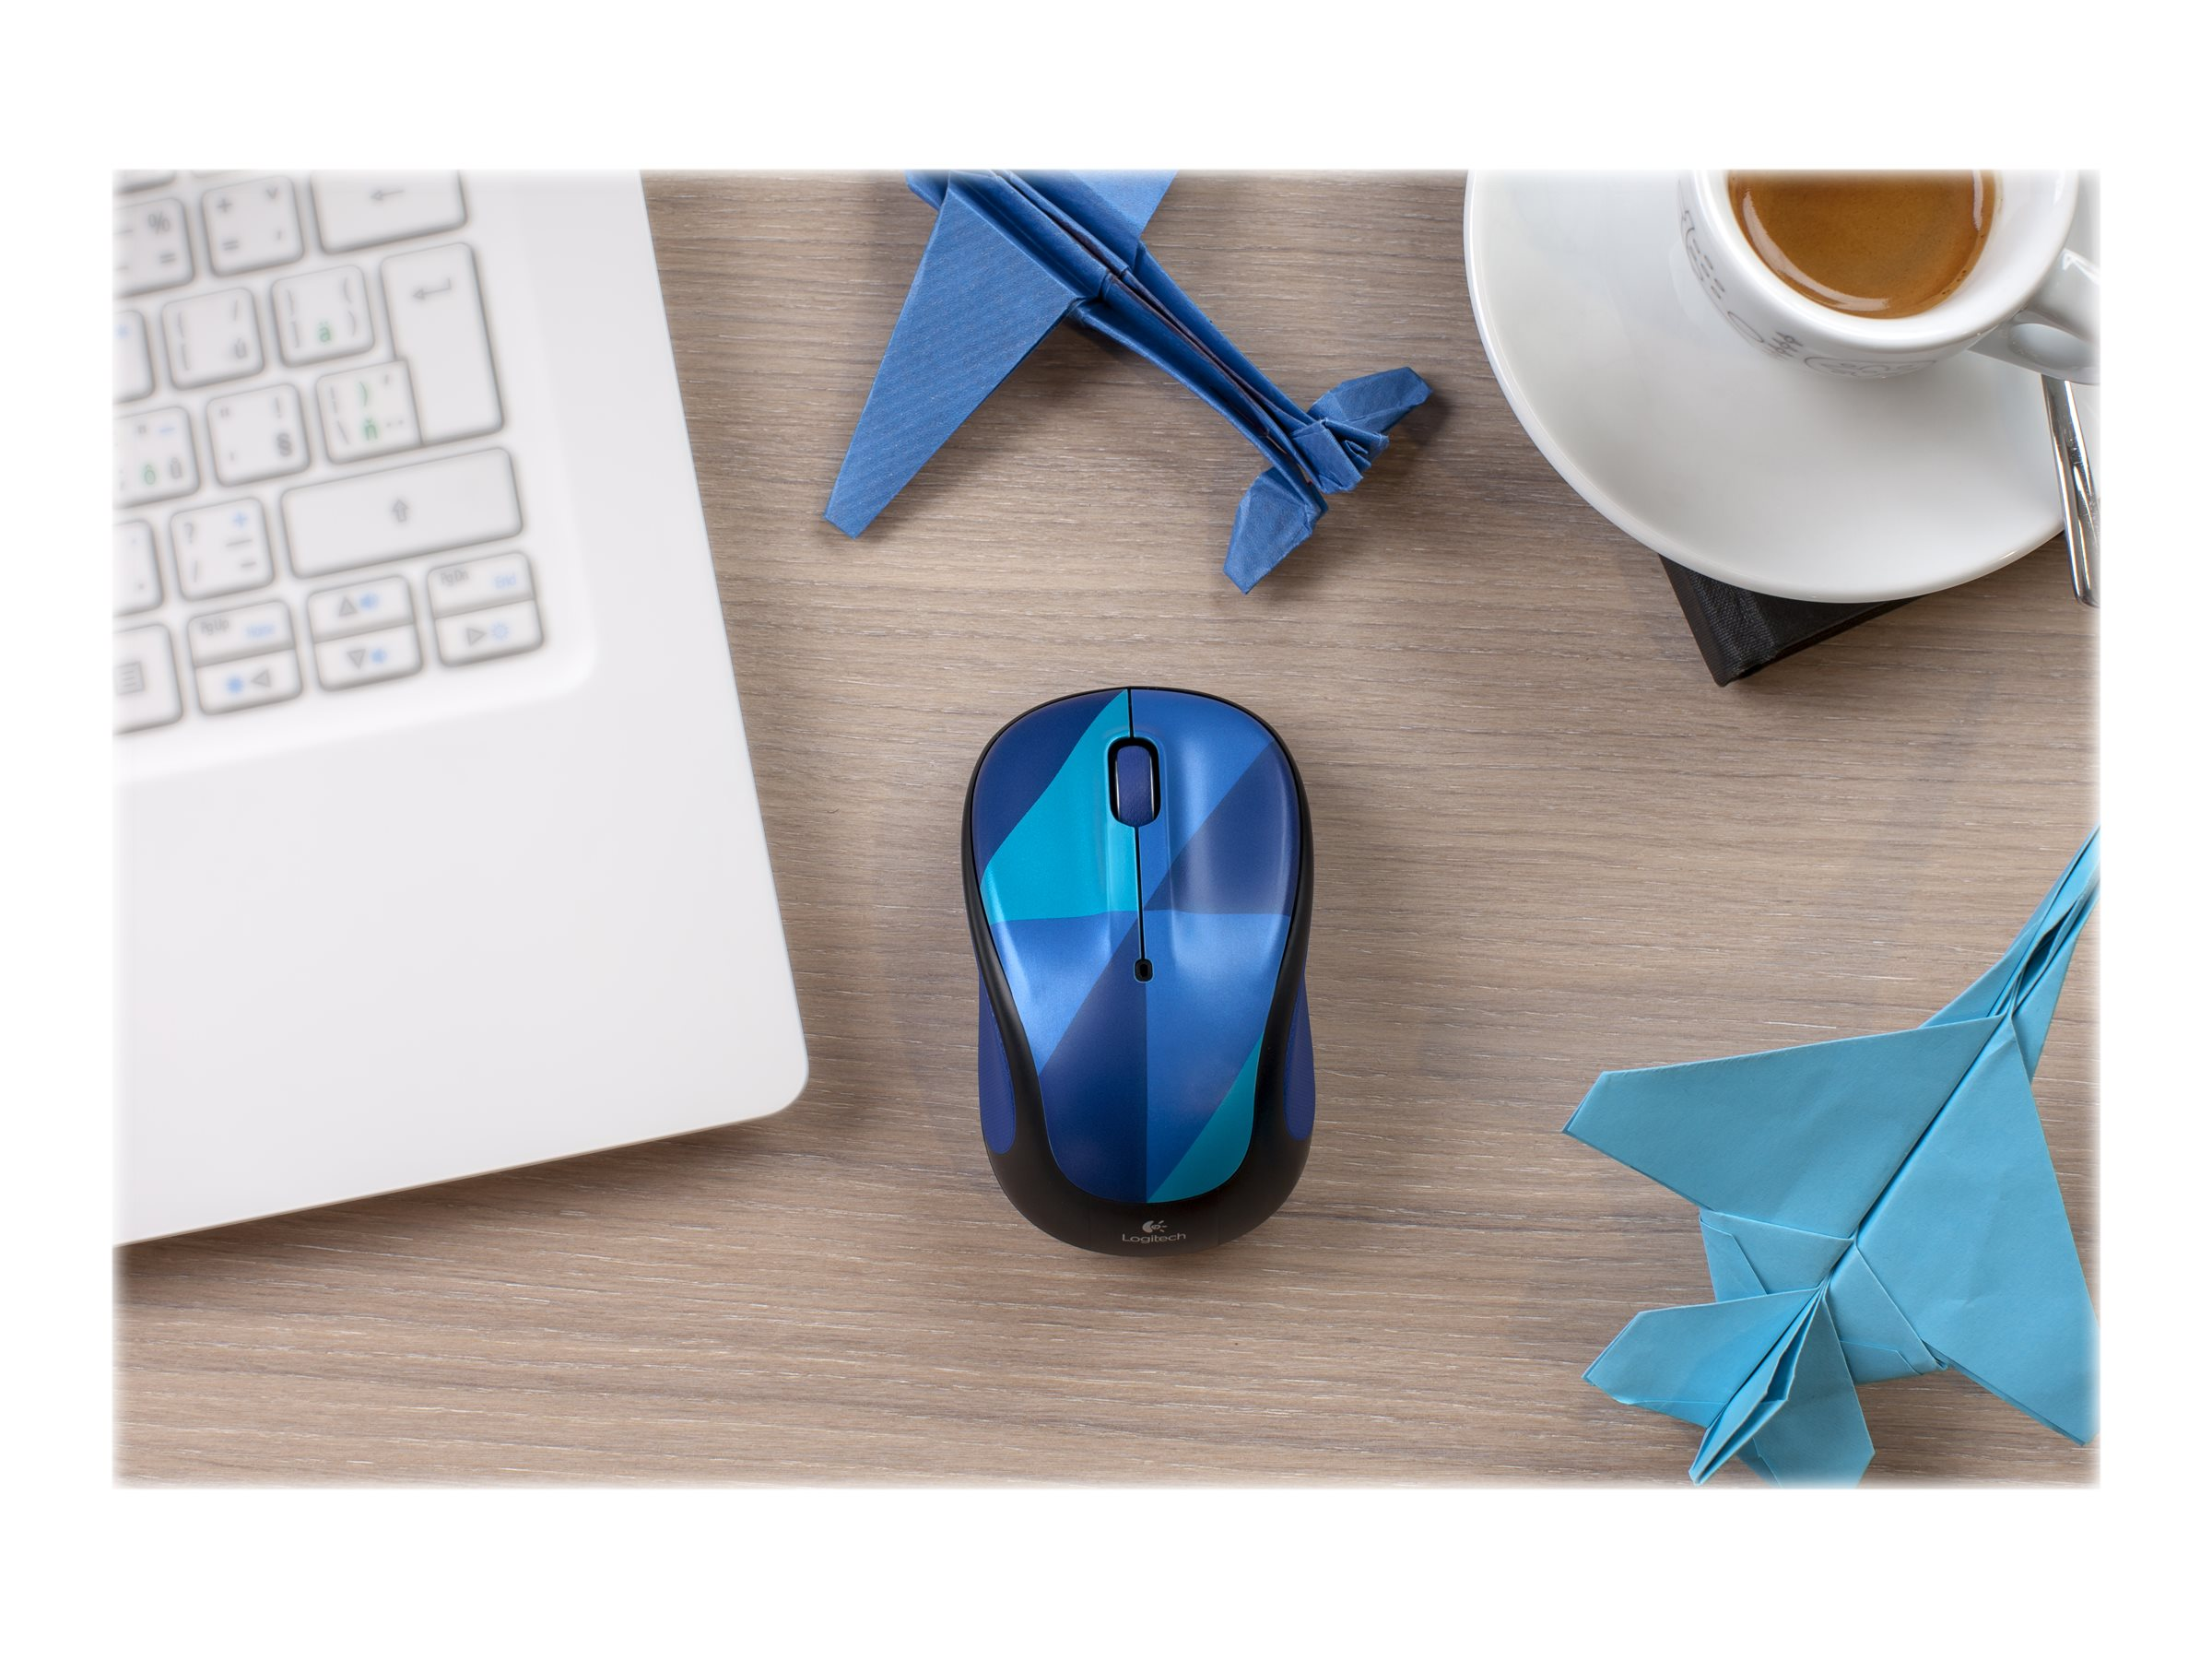 Logitech M325c Wireless Optical Mouse, Blue Harlequin, 910-004459, 22900894, Mice & Cursor Control Devices